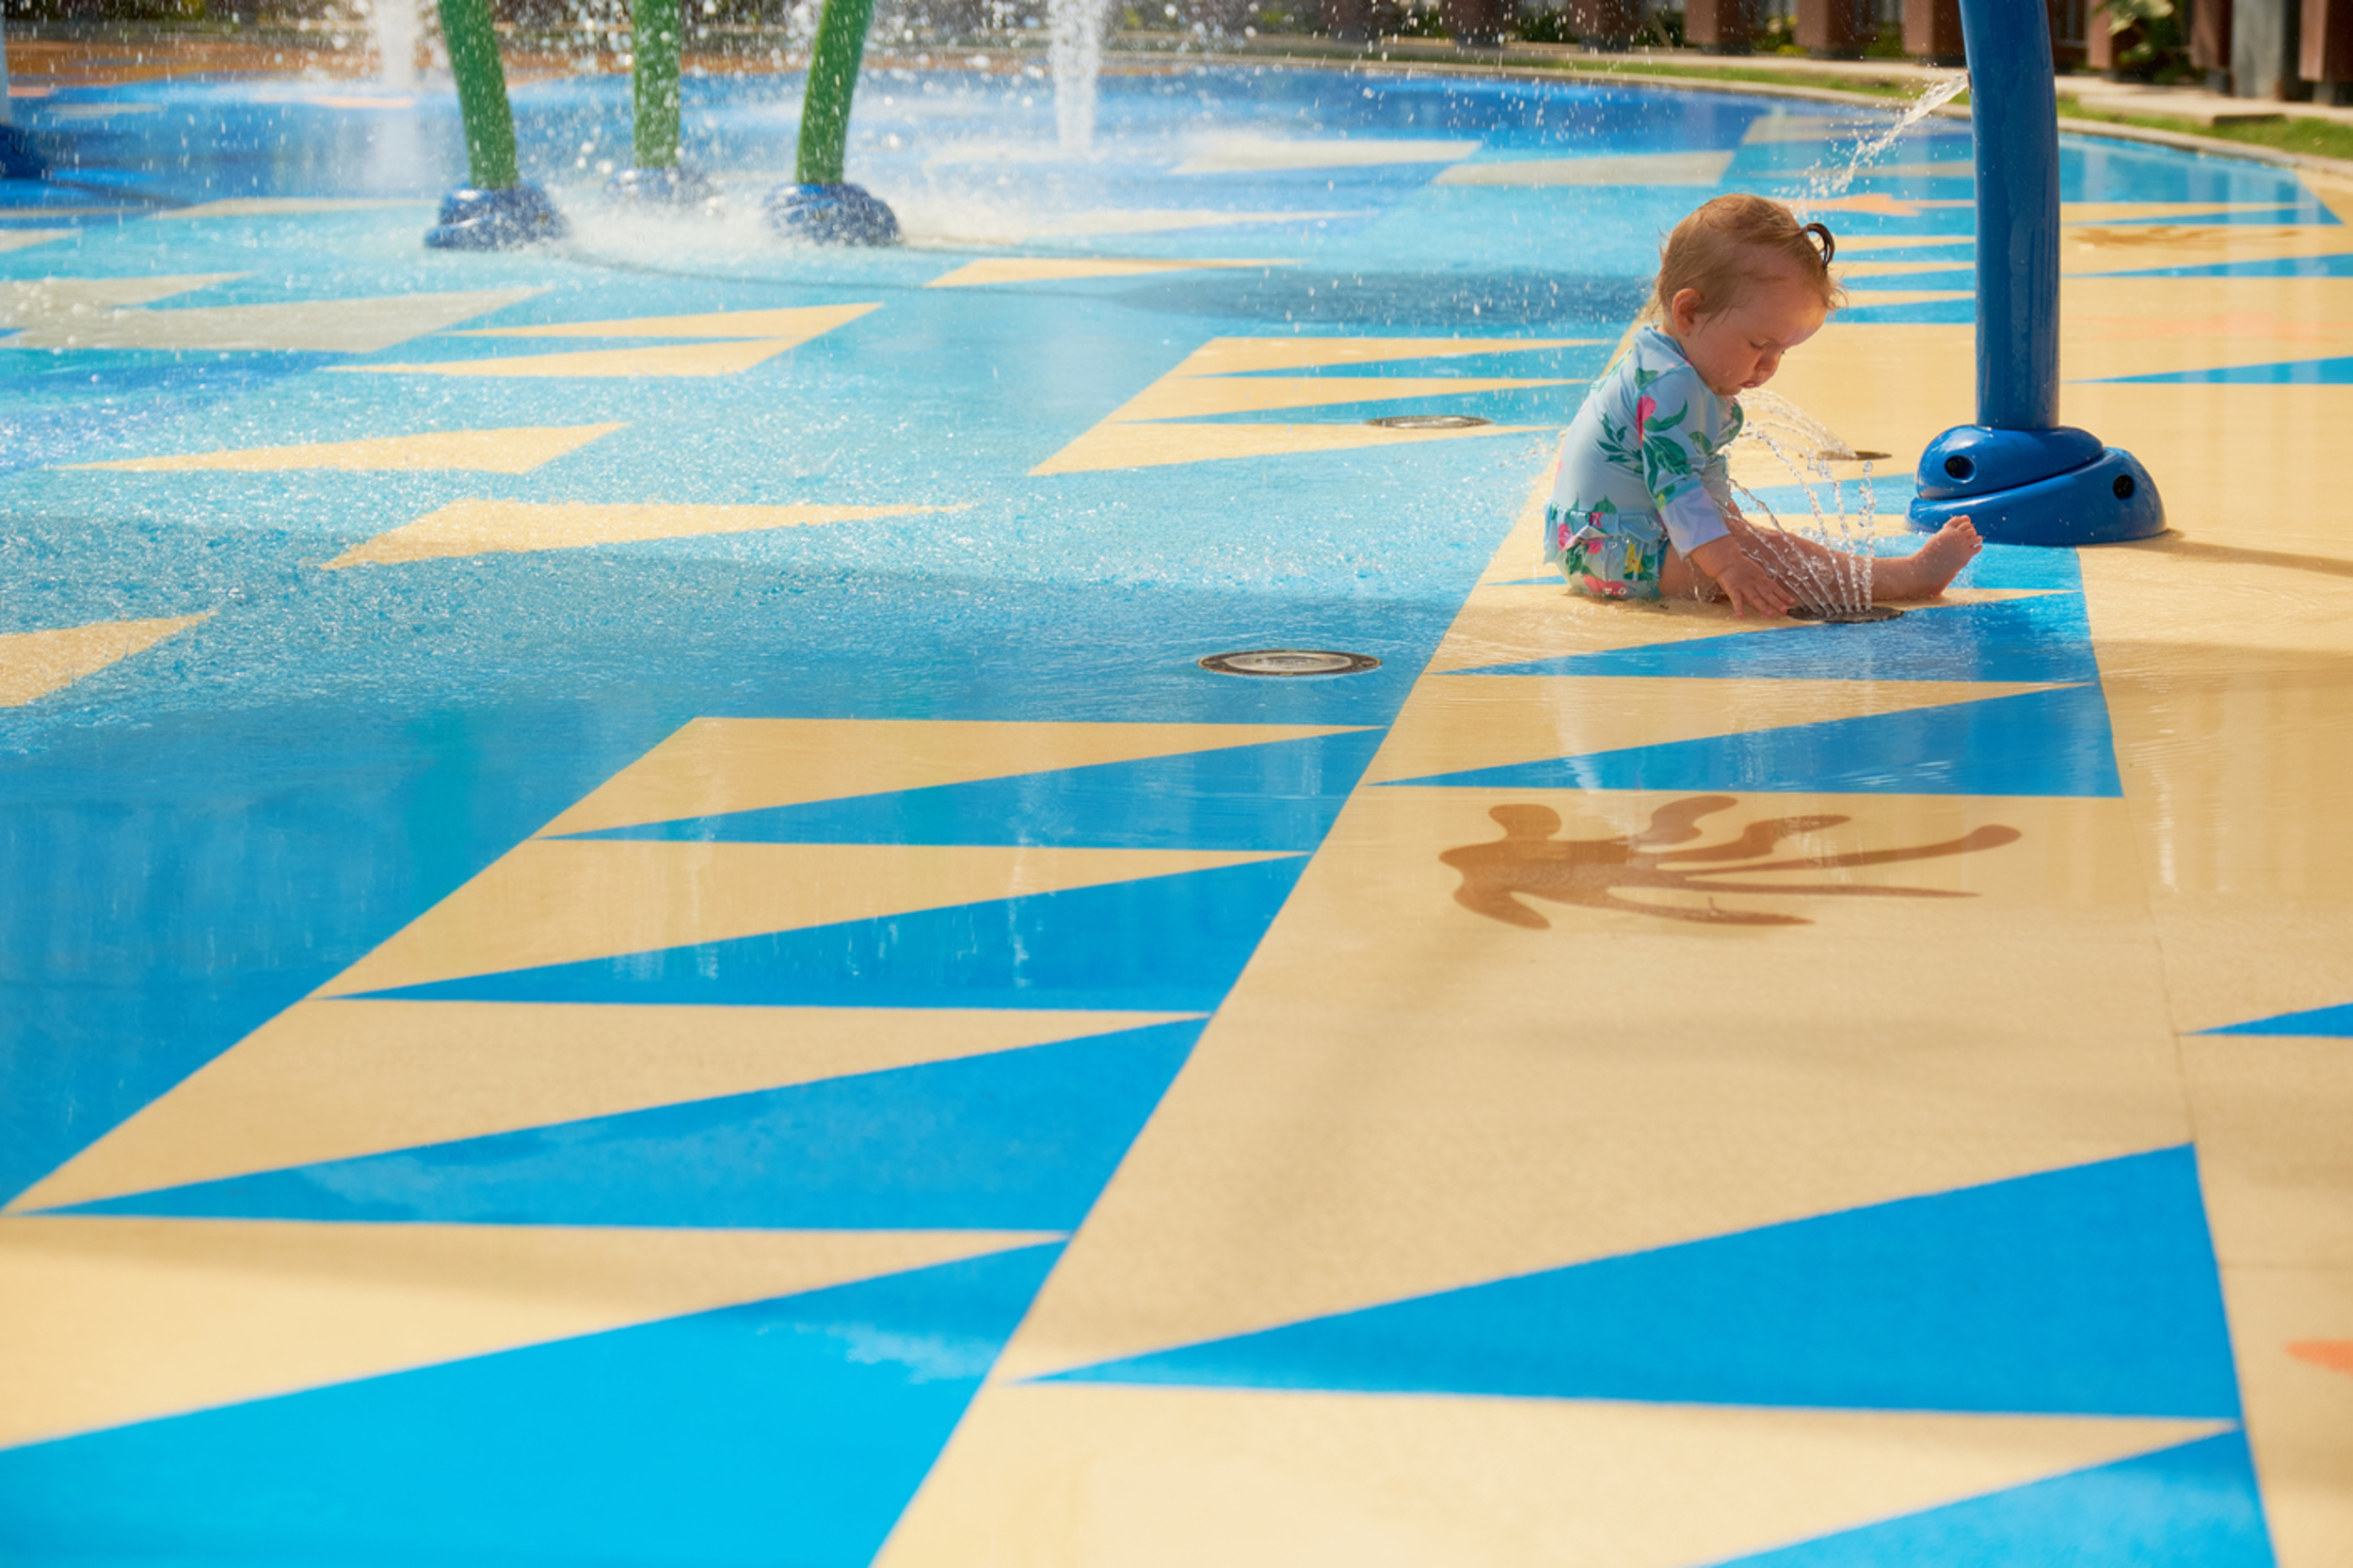 The_Beach_Splash_Pad_RGR26626 (3).jpg